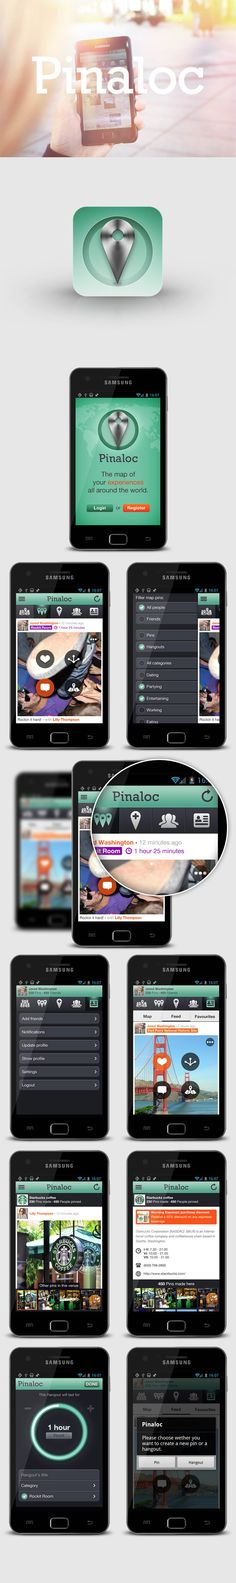 Pinaloc by Adomas Jazdauskas, via Behance *** Pinaloc is a mobile application which lets people to Pin their experiences in particular places all around the world. So far application is available only for Android.